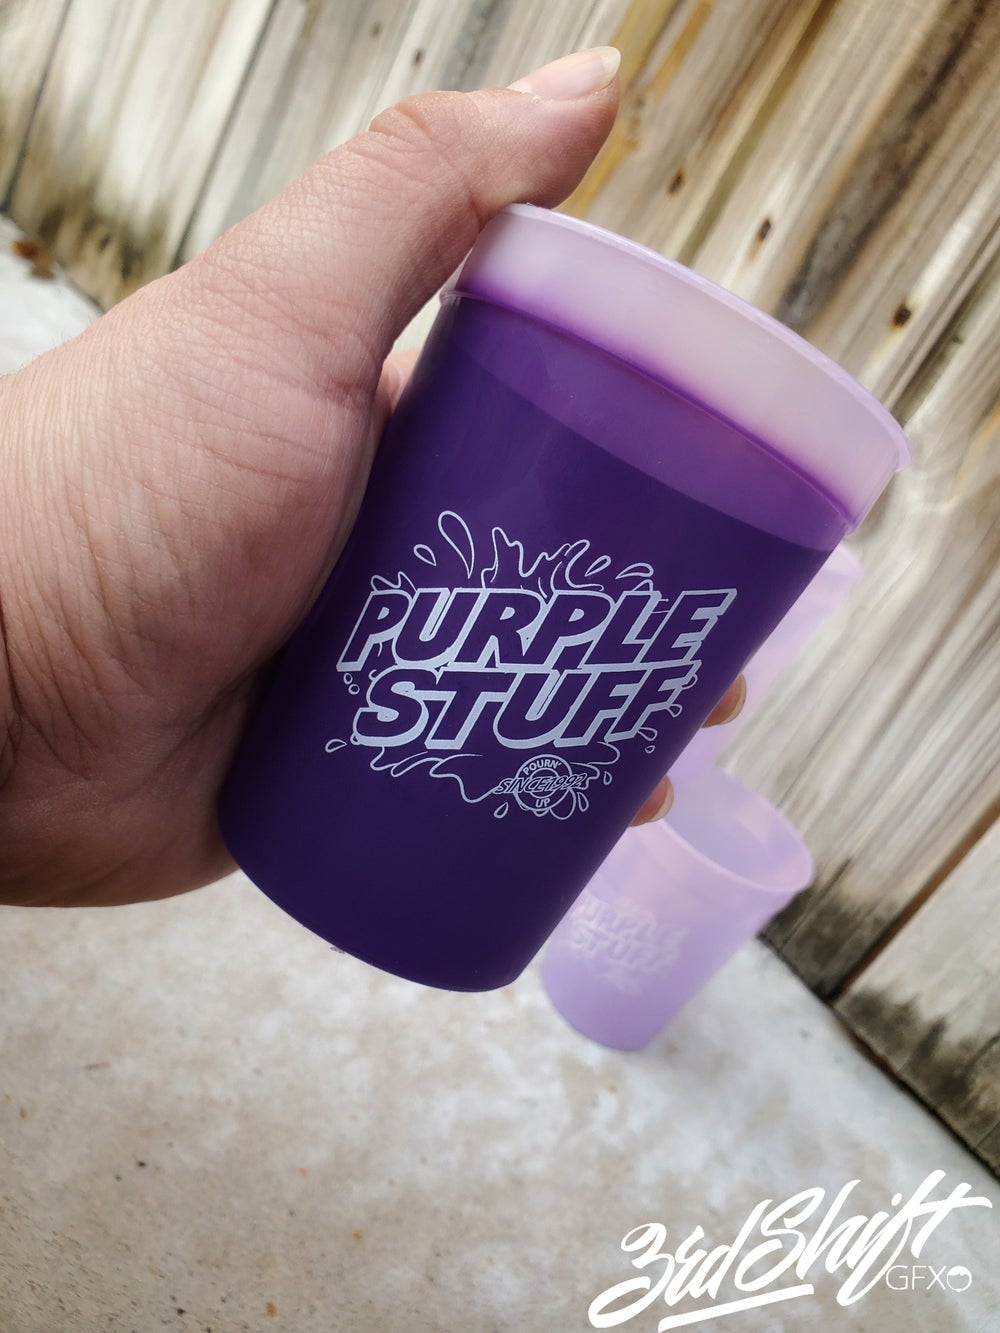 Purple Stuff 12 oz stadium cups (12 OZ)